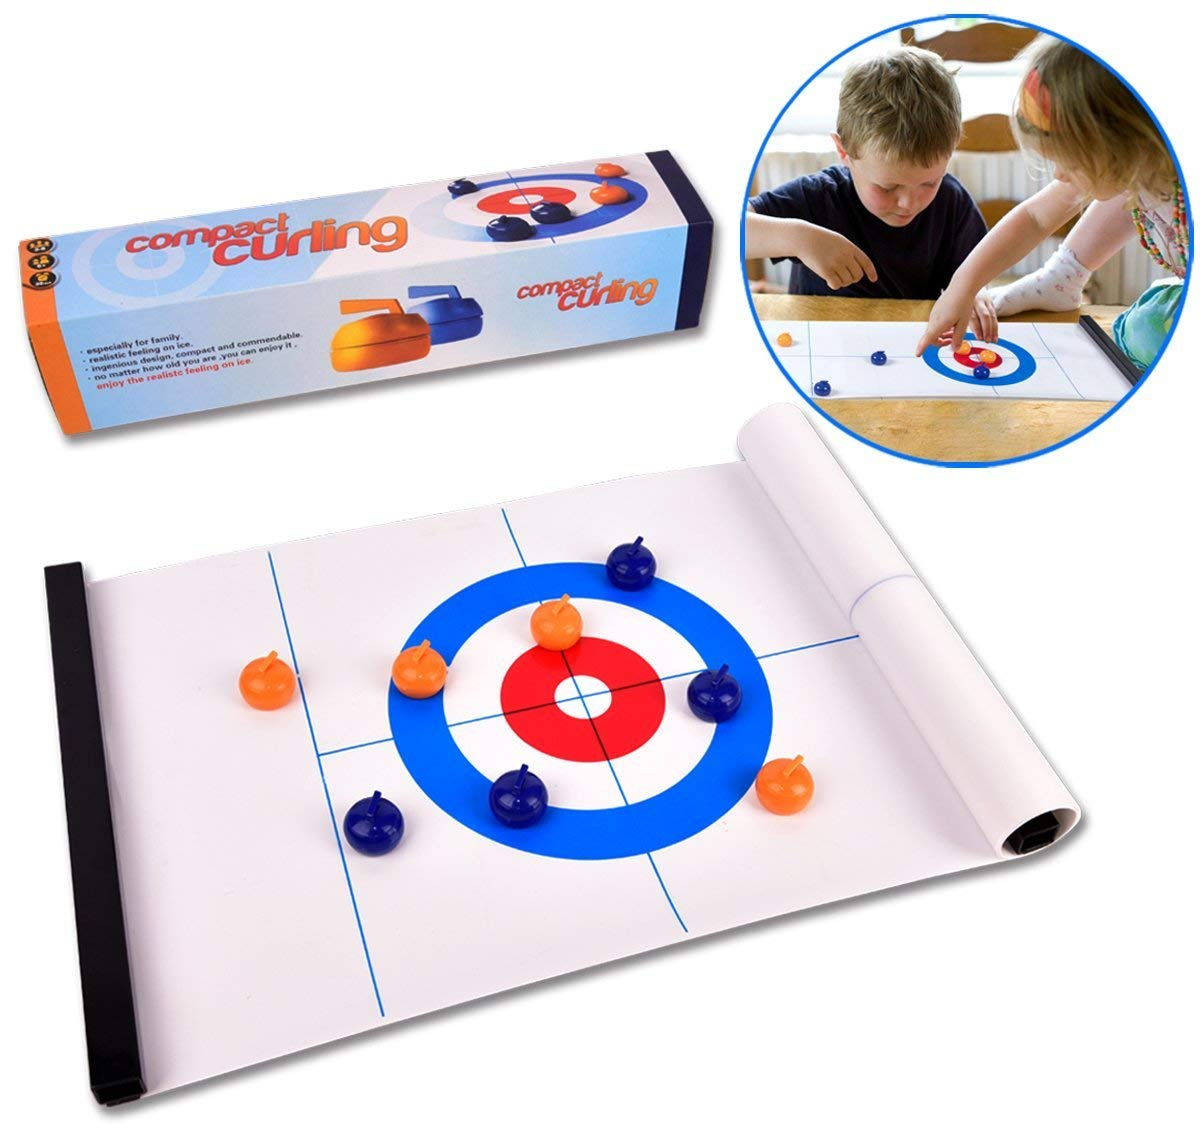 ROPODA Tabletop Curling Game-Compact Curling Board Game, Mini Table Games for Family, School, Office or Travel Play by ROPODA